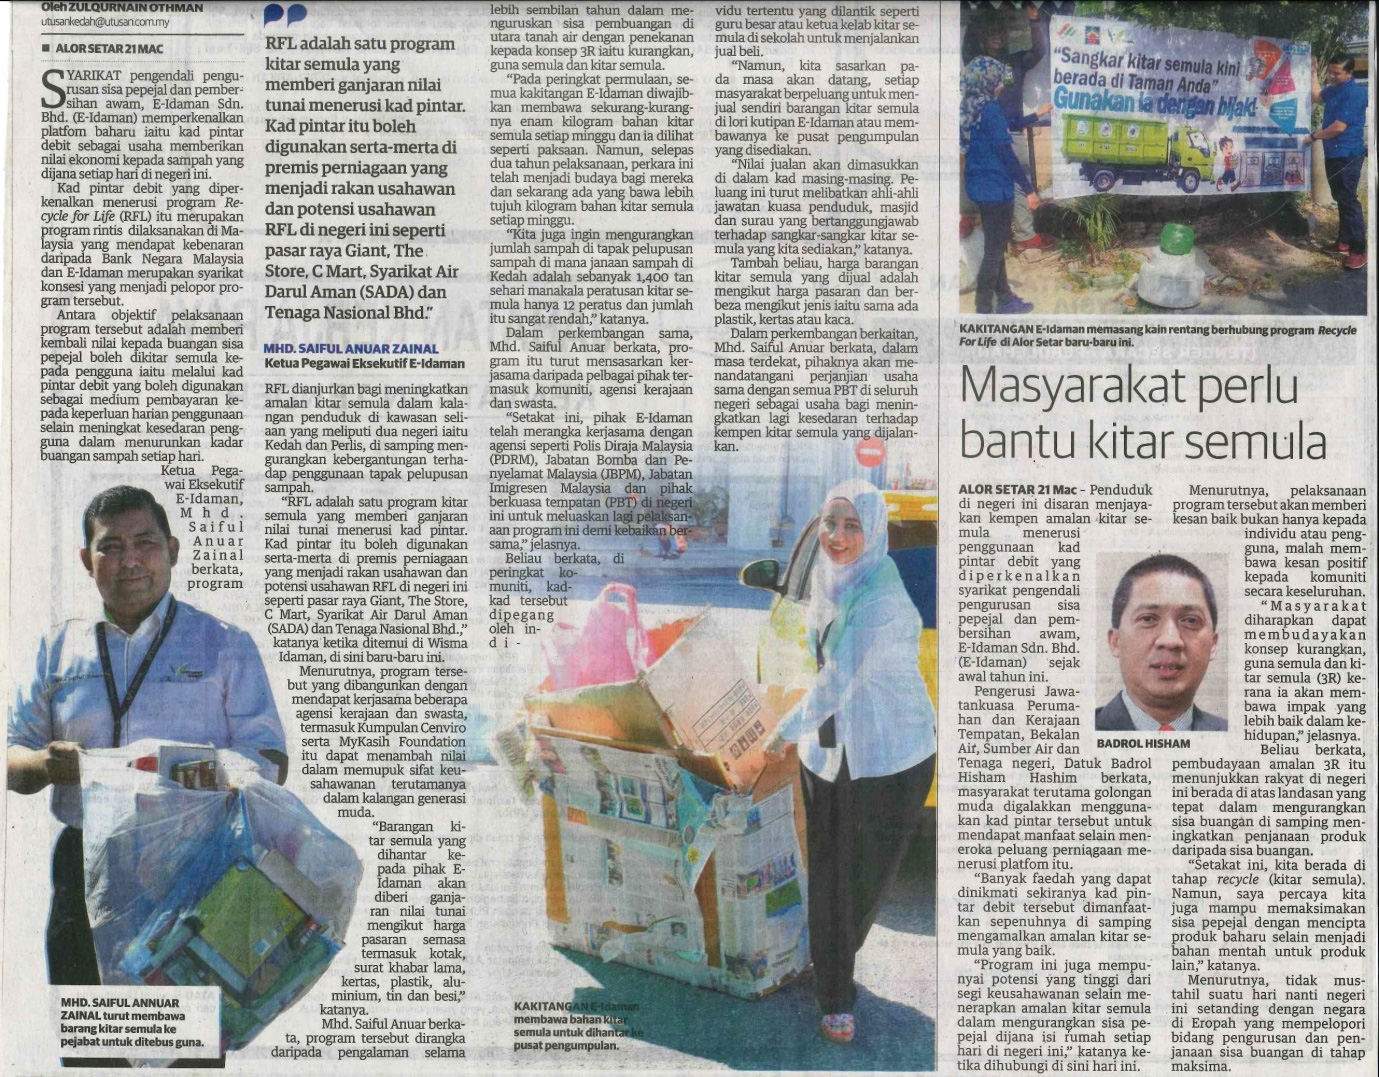 Utusan-22-March-2018-Part-II.jpg